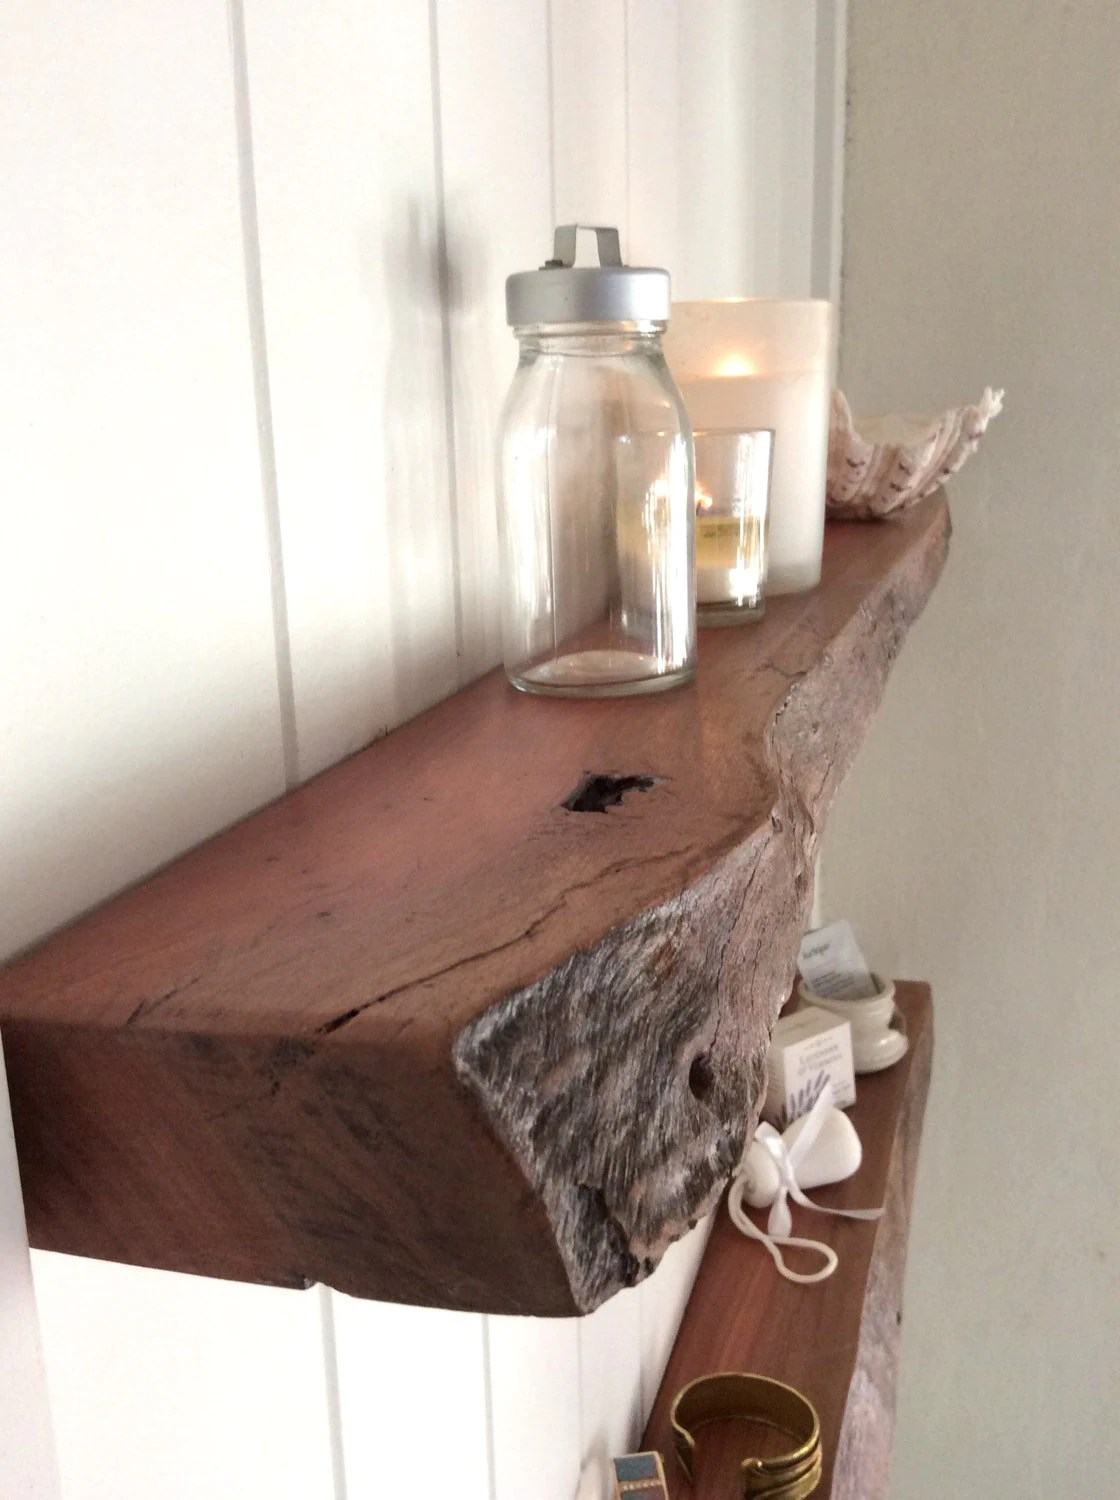 Inspiring Rustic Live Edge Narrow Wall Mountedbathroom Floating Shelf Perth Jarrah Floating Shelves Australia Set Floating Shelves Australia Set Rustic Live Edge Narrow Wall furniture Narrow Floating Shelves